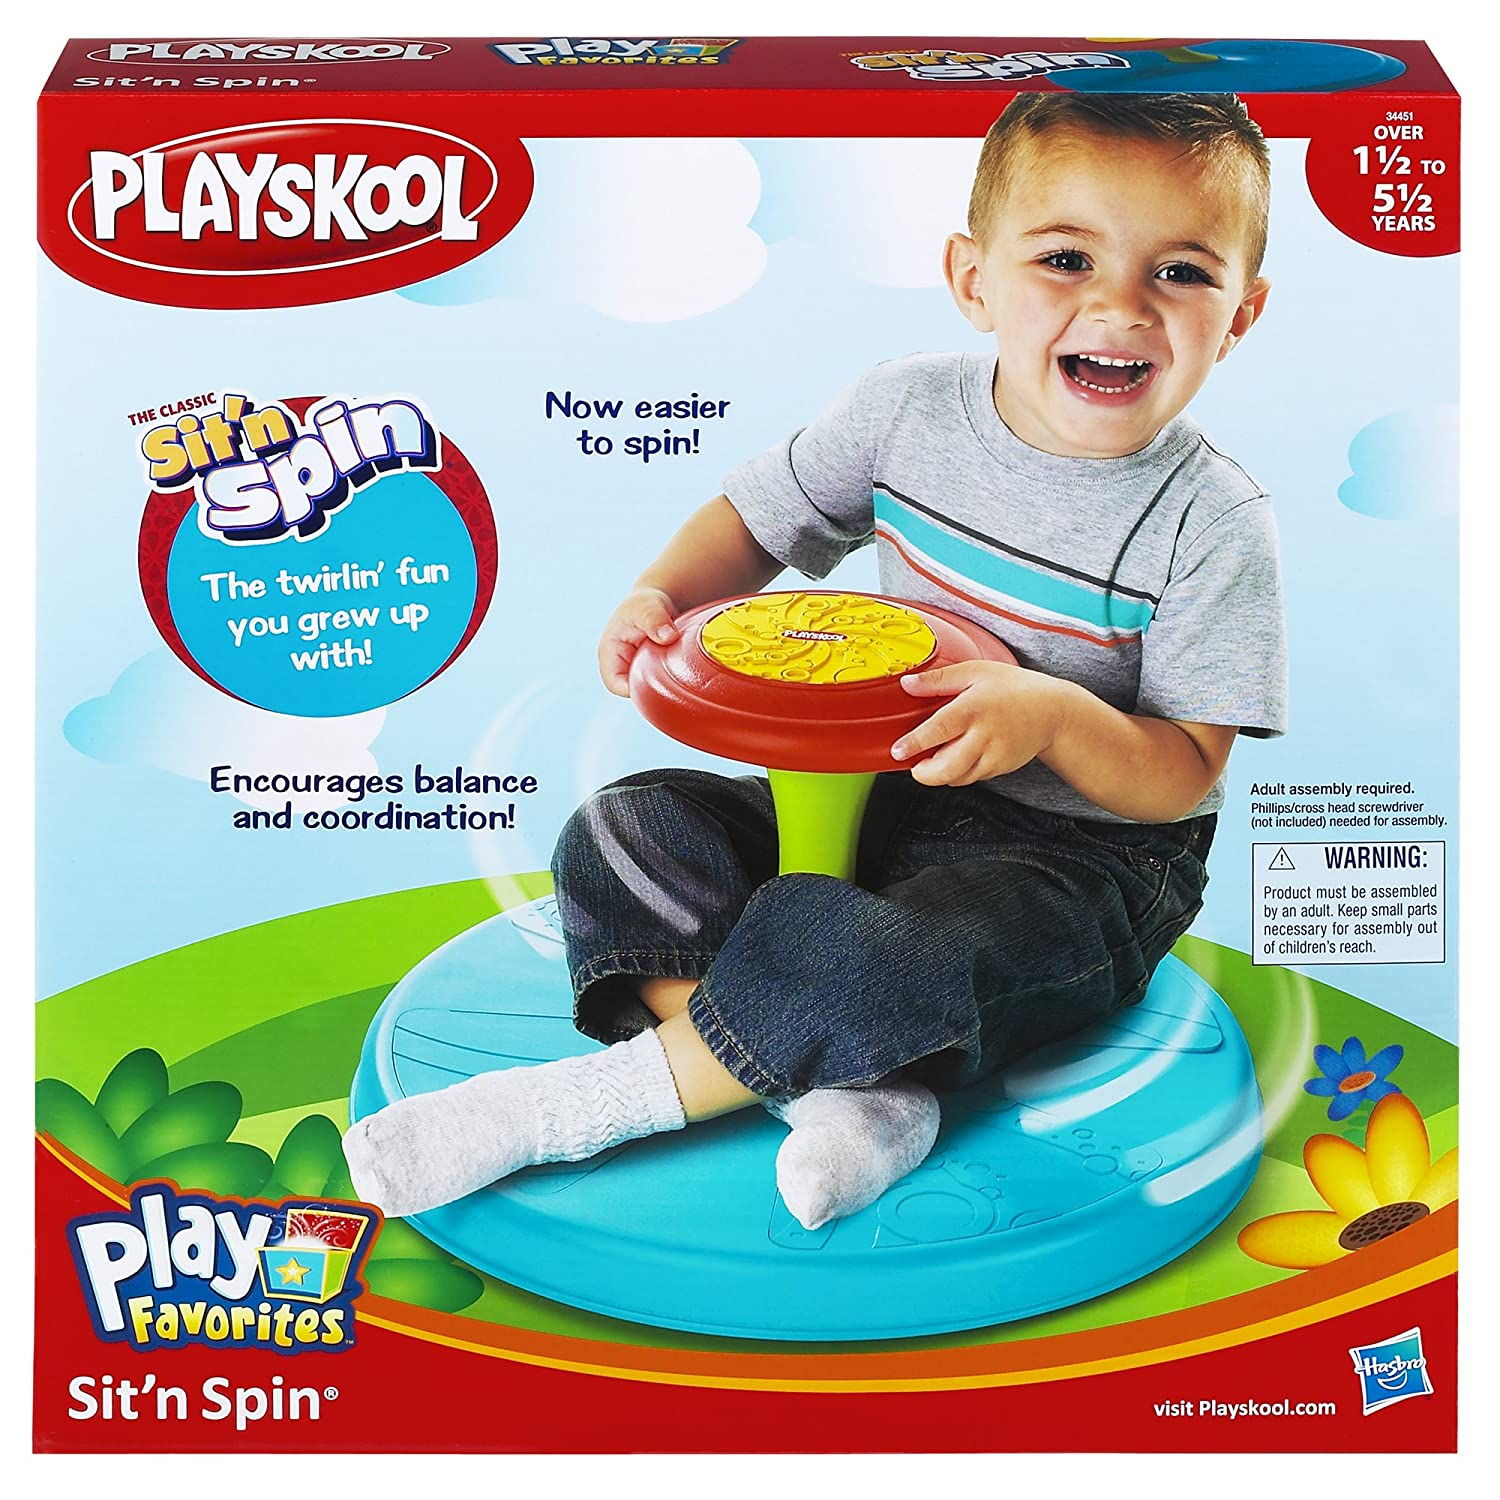 New Spin Toys : Playskool play favorites sit `n spin toy new free shipping